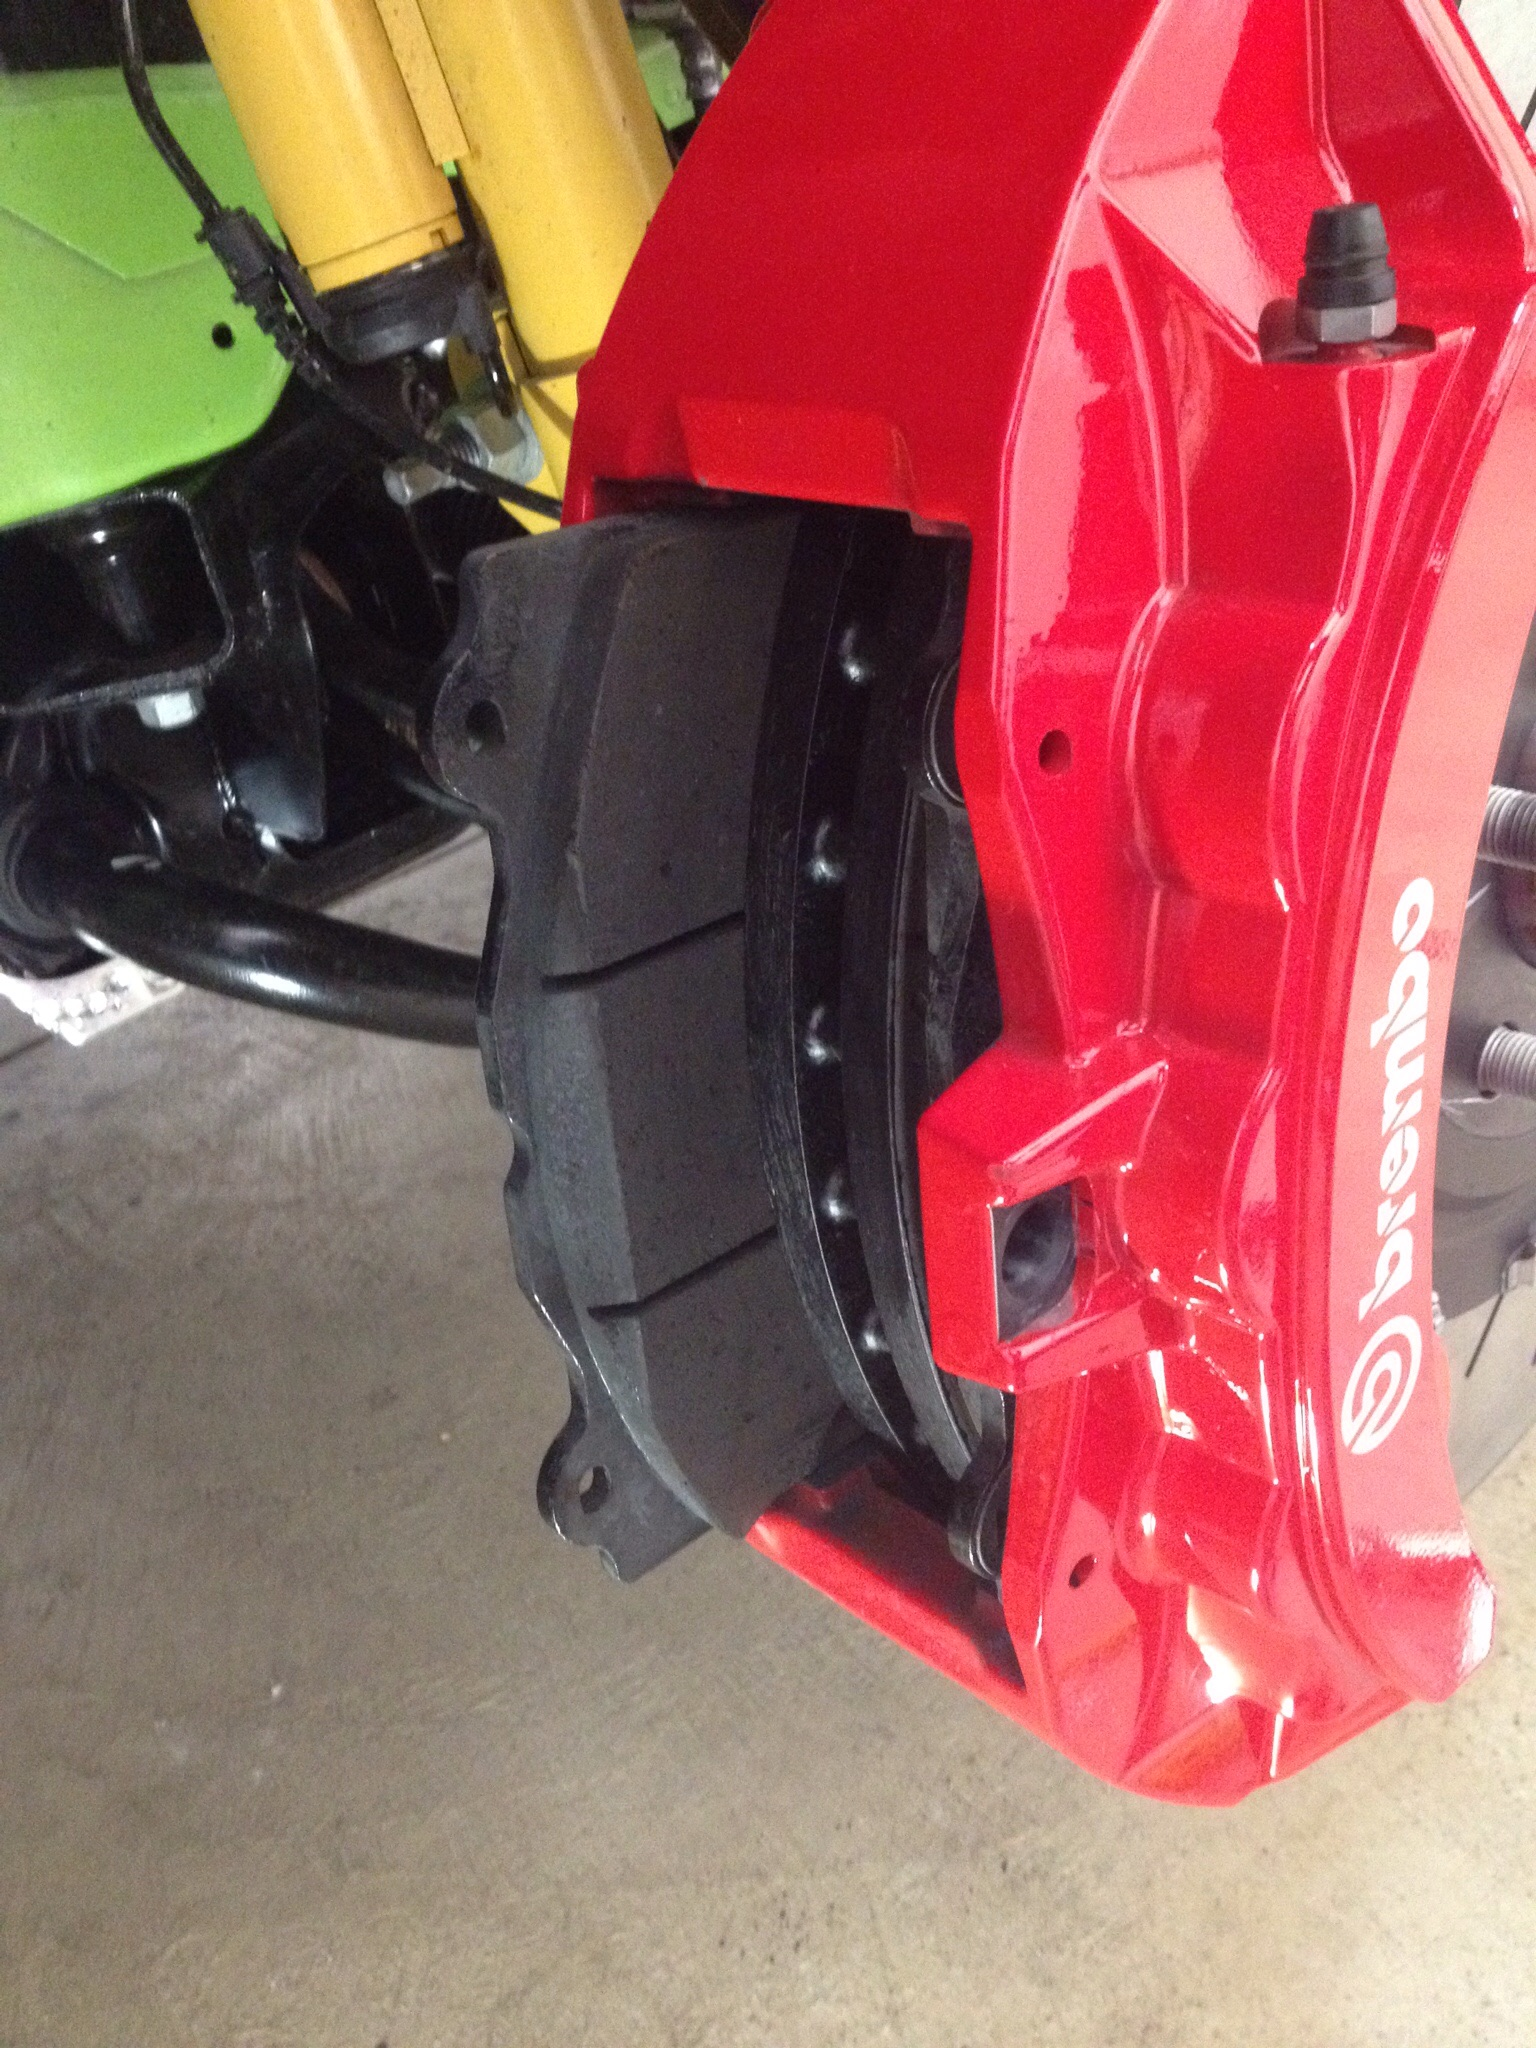 Low Dust Brake Pad Install Srt Hellcat Forum When To Change Pads Image